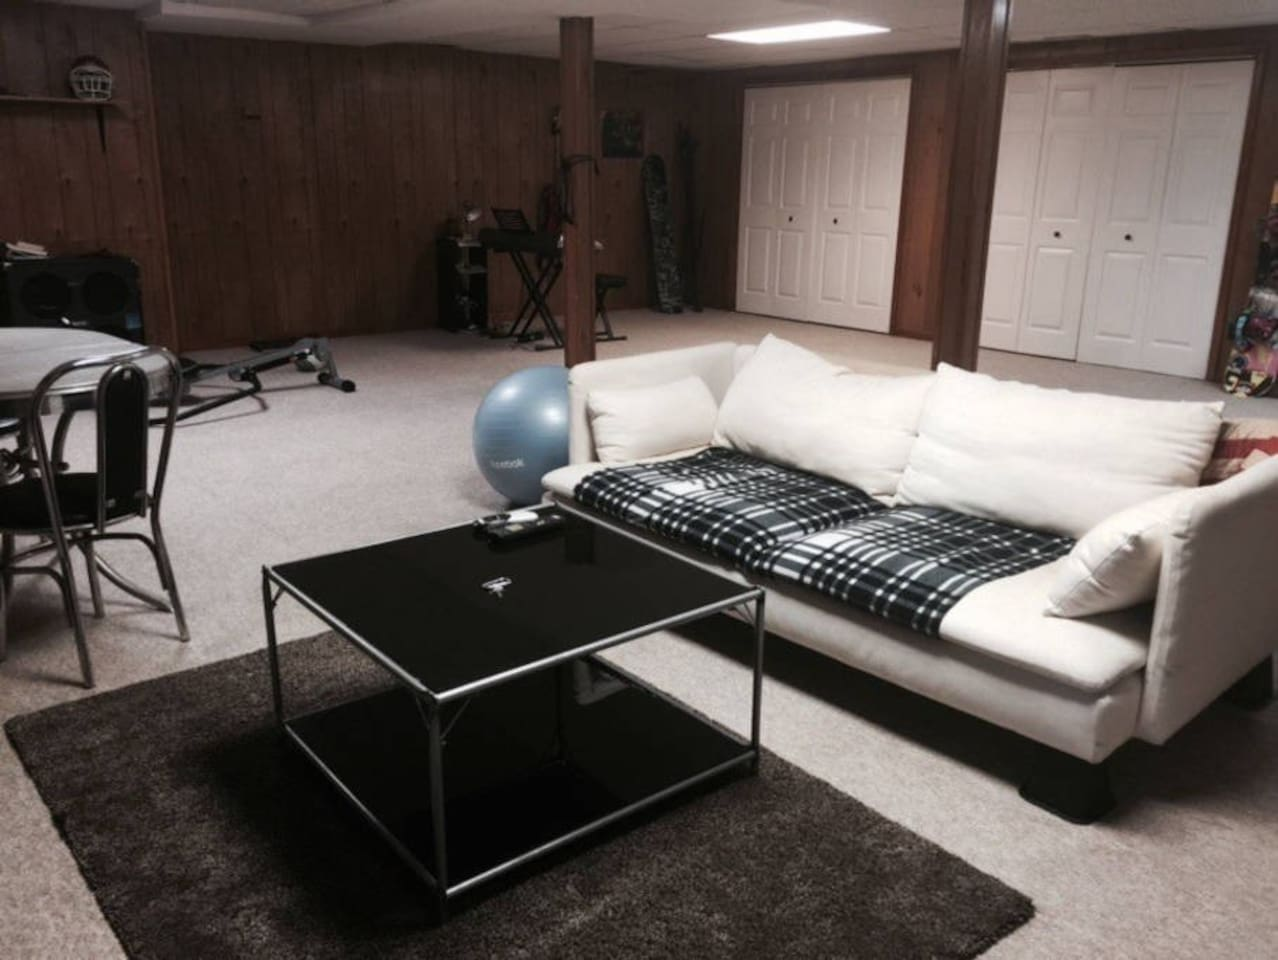 Couch and table in living space